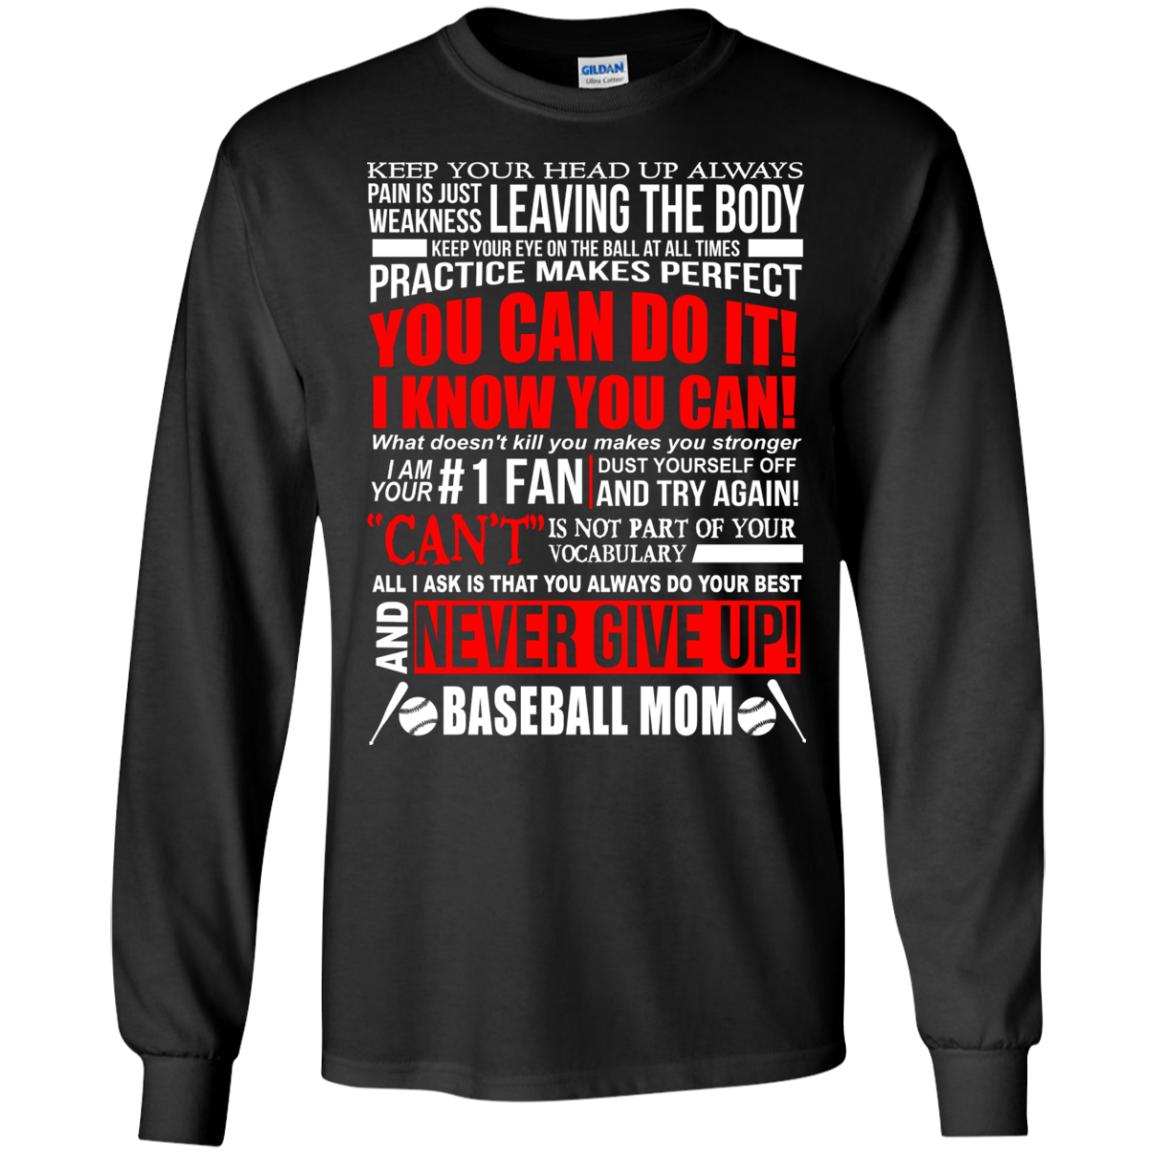 BASEBALL MOM, NEVER GIVE UP T-Shirts and Hoodie - The Sun Cat